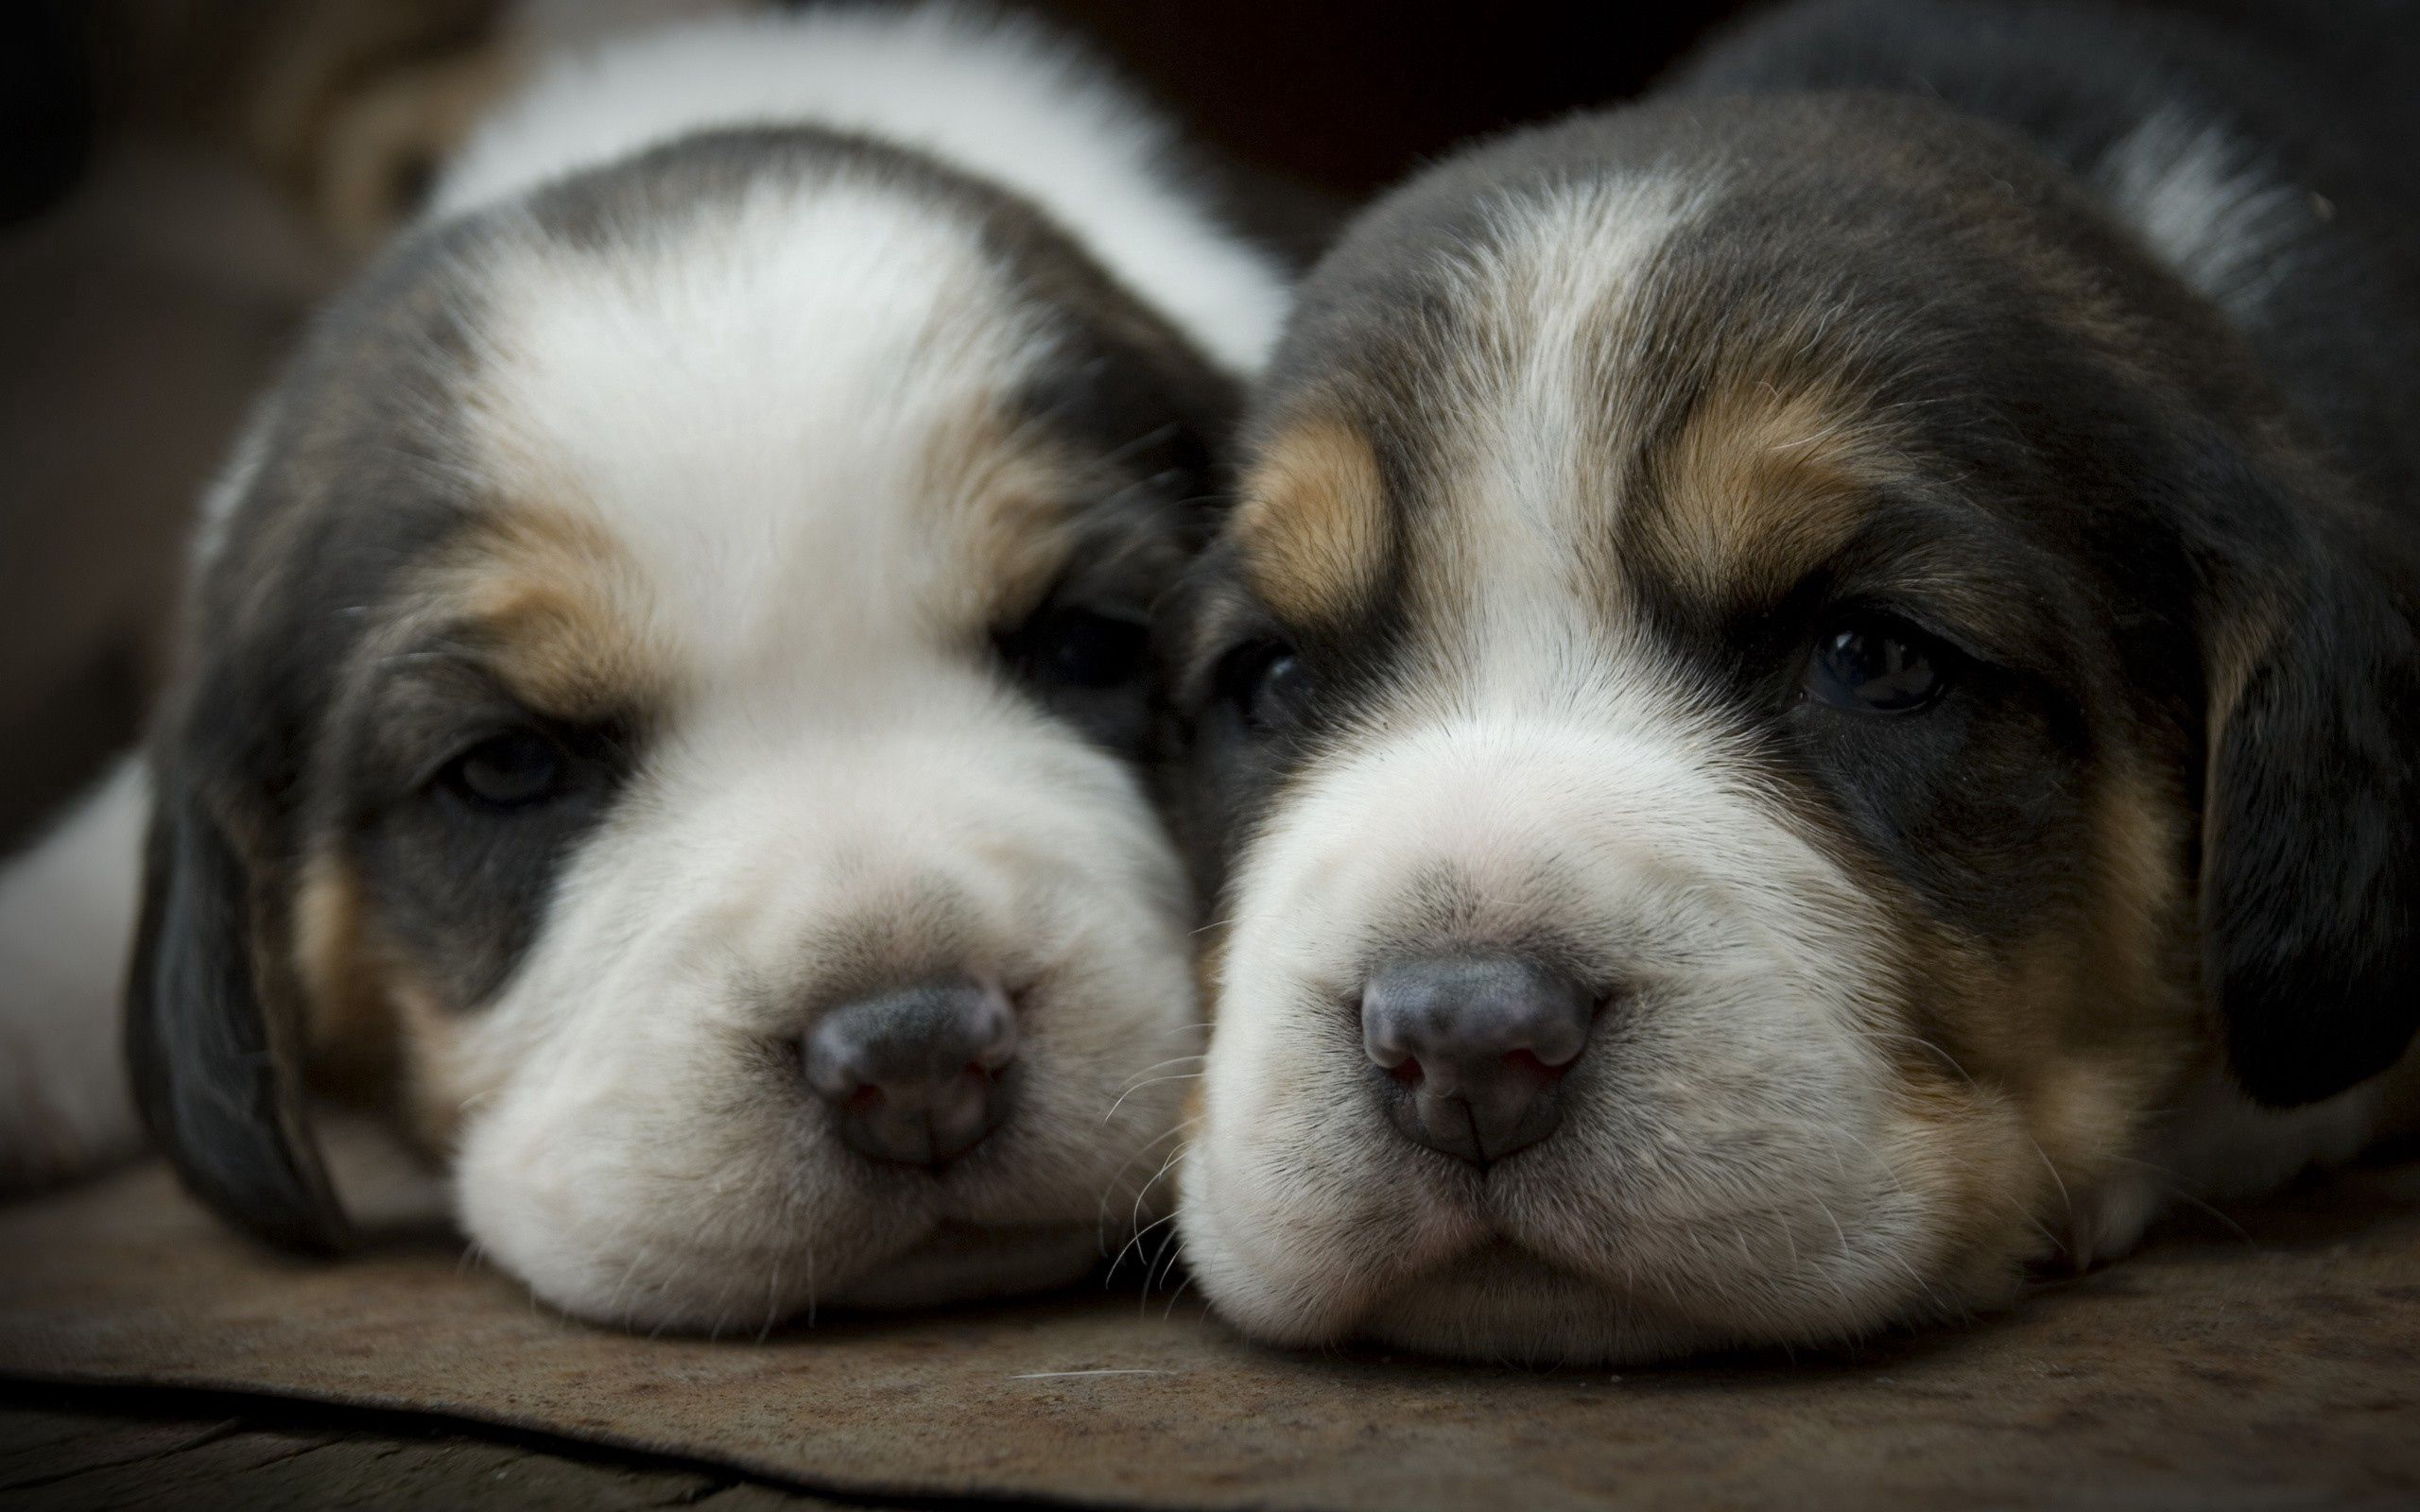 144415 download wallpaper Animals, Dog, Muzzle, Spotted, Spotty, Puppies screensavers and pictures for free